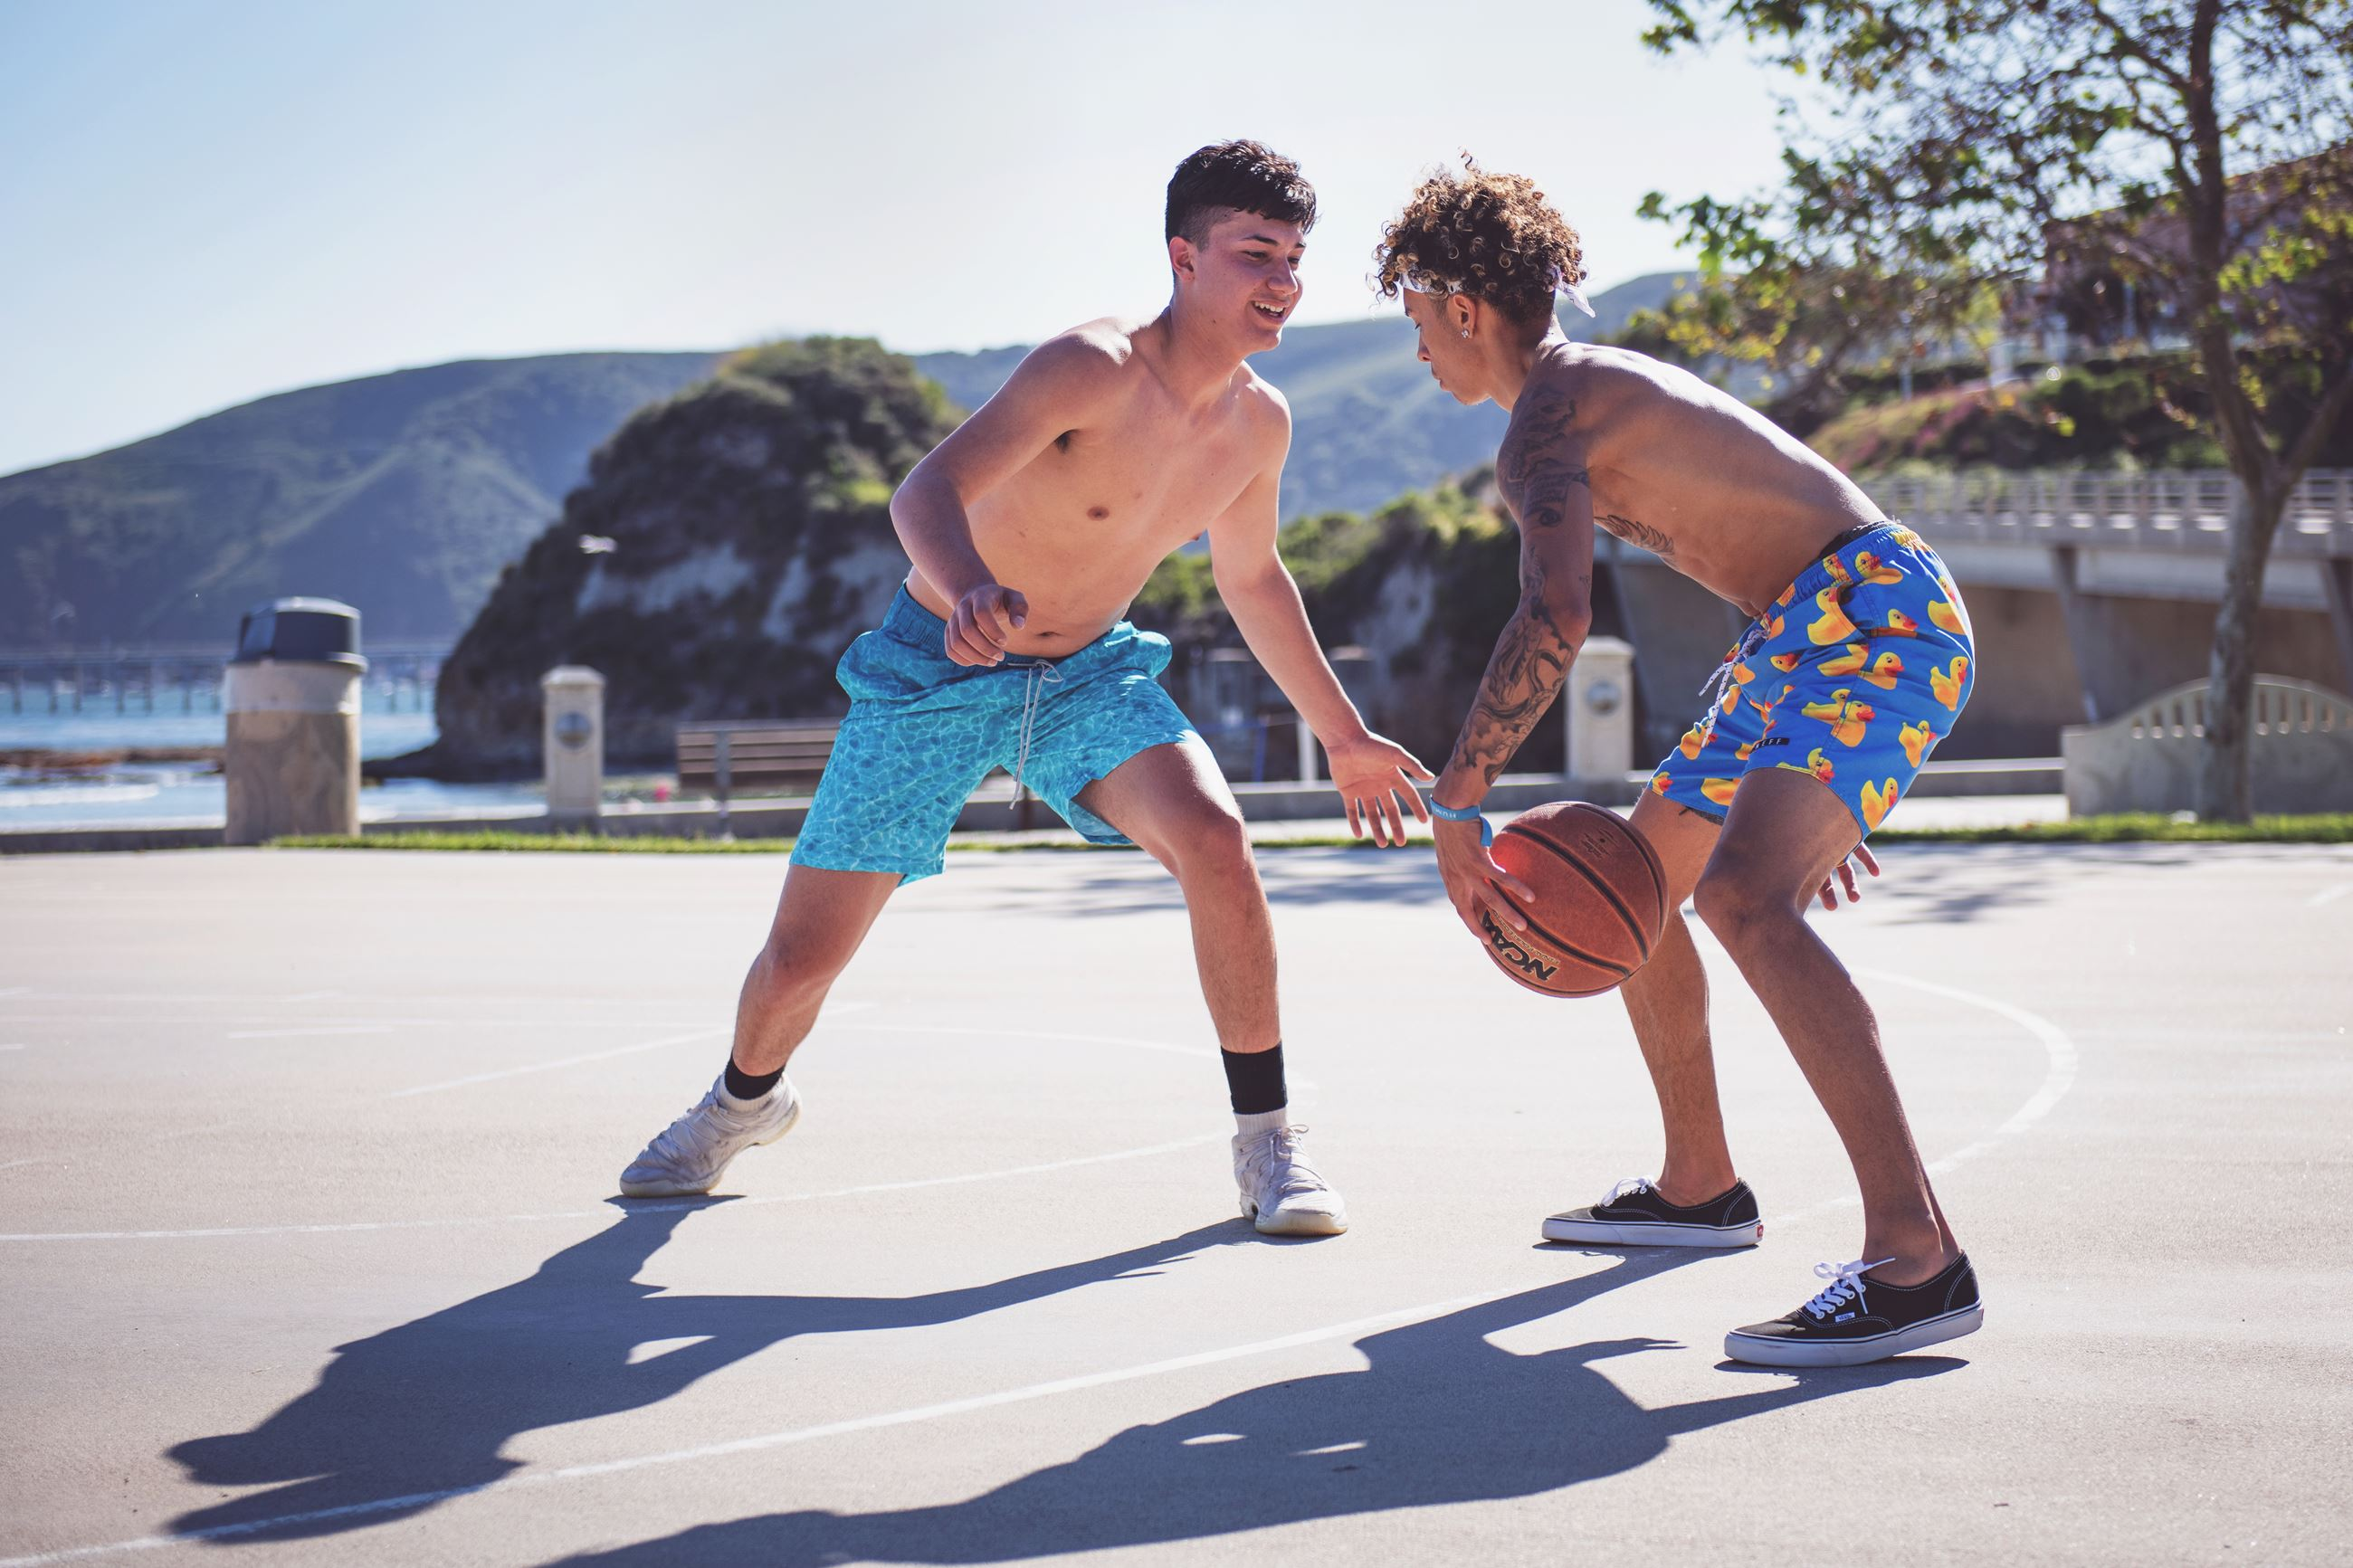 Canva - Photo Of Two Men Playing Basketball